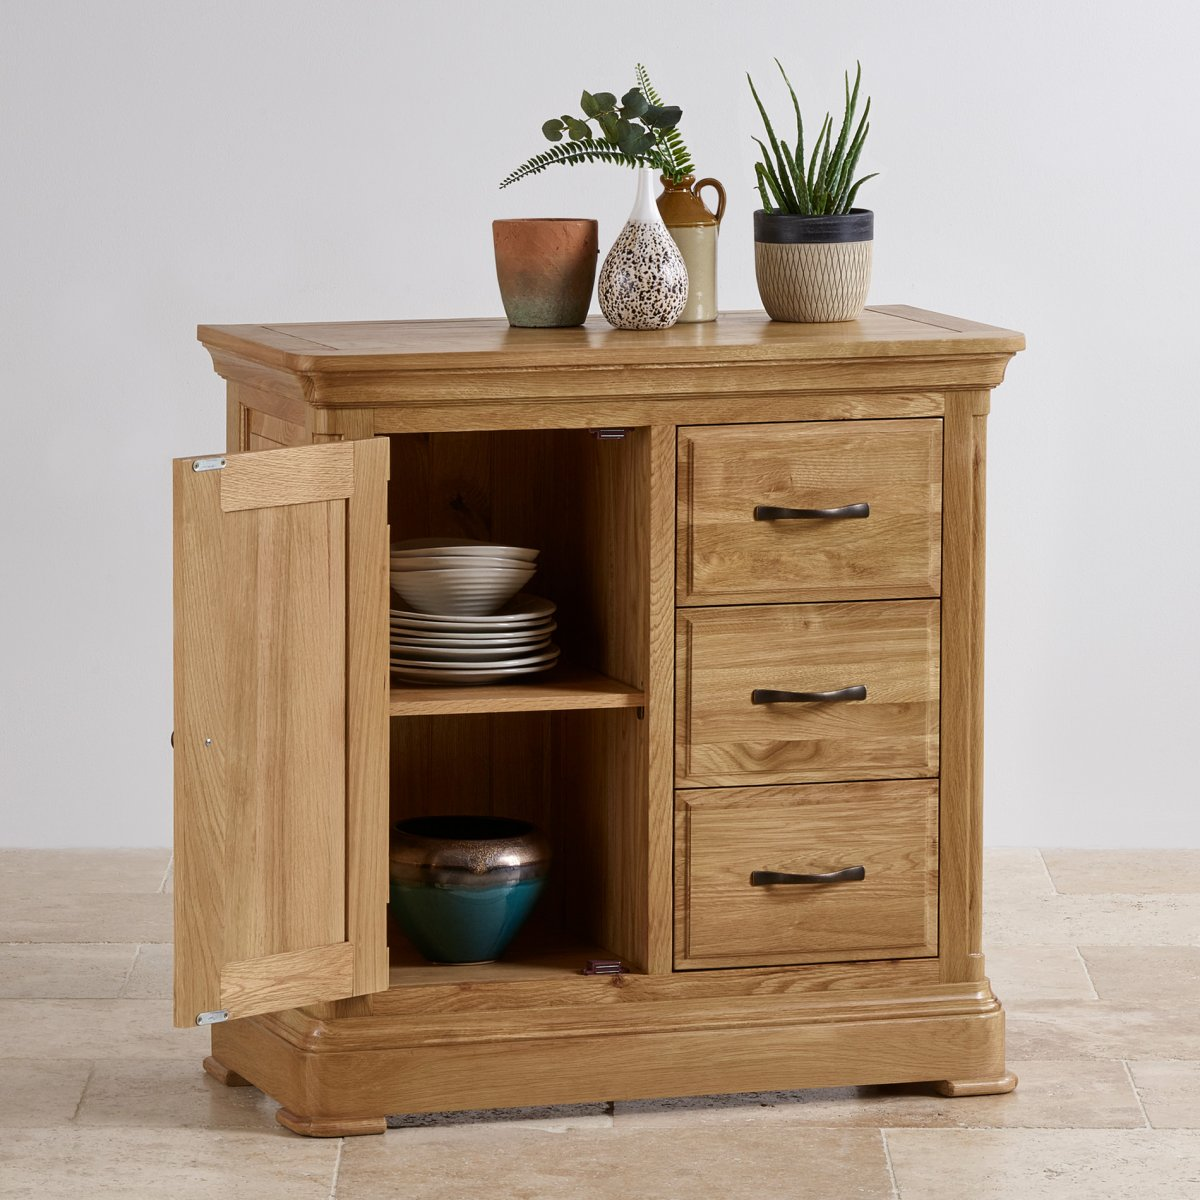 Natural Oak Kitchen Cabinets: Canterbury Storage Cabinet In Natural Solid Oak